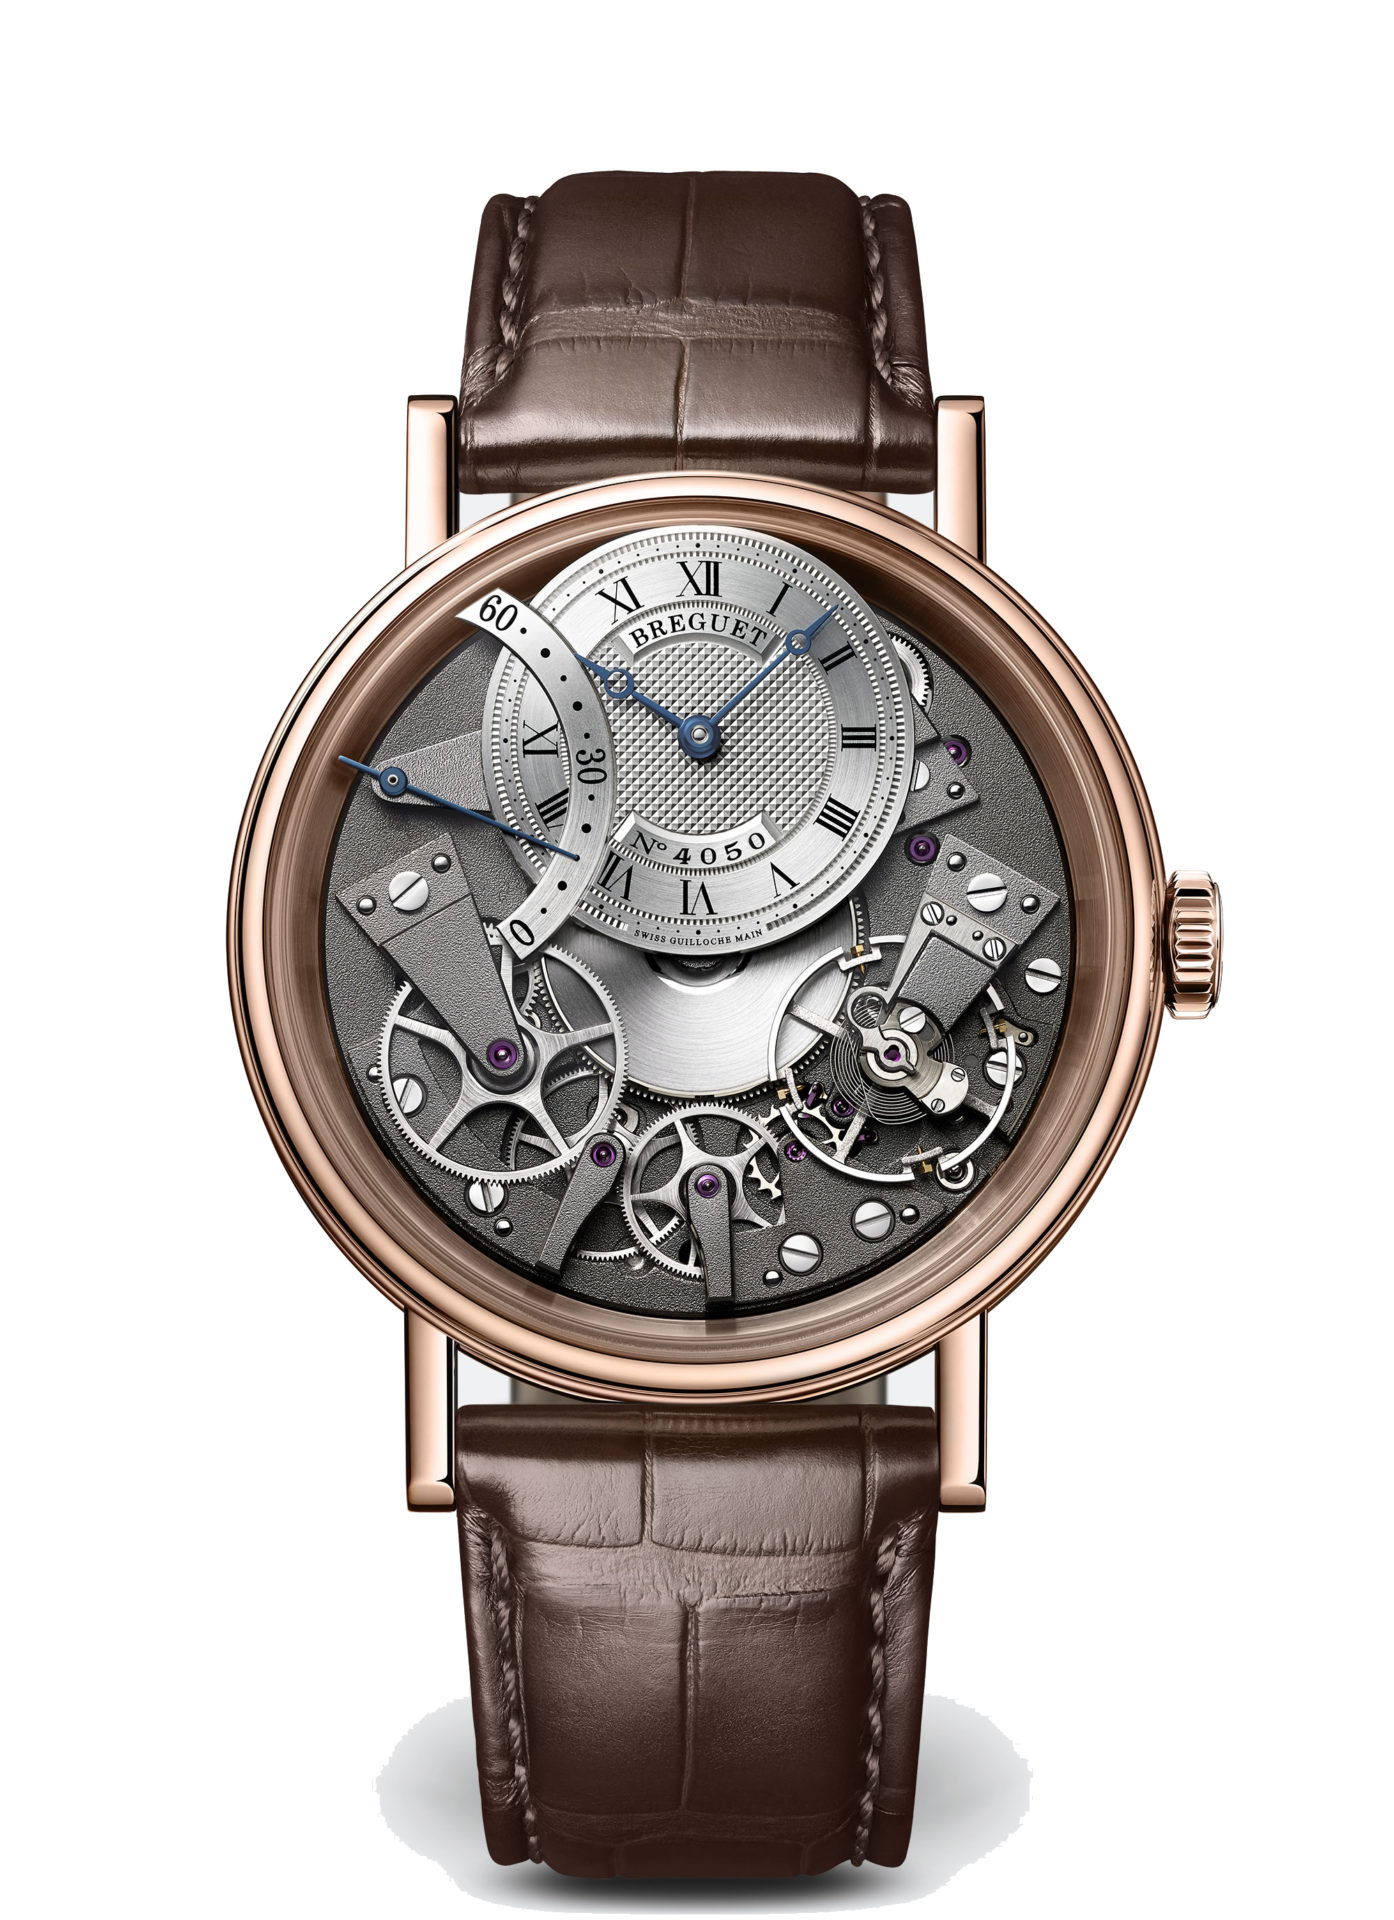 Breguet-Tradition-Hall-of-Time-7097br-g1-9wu